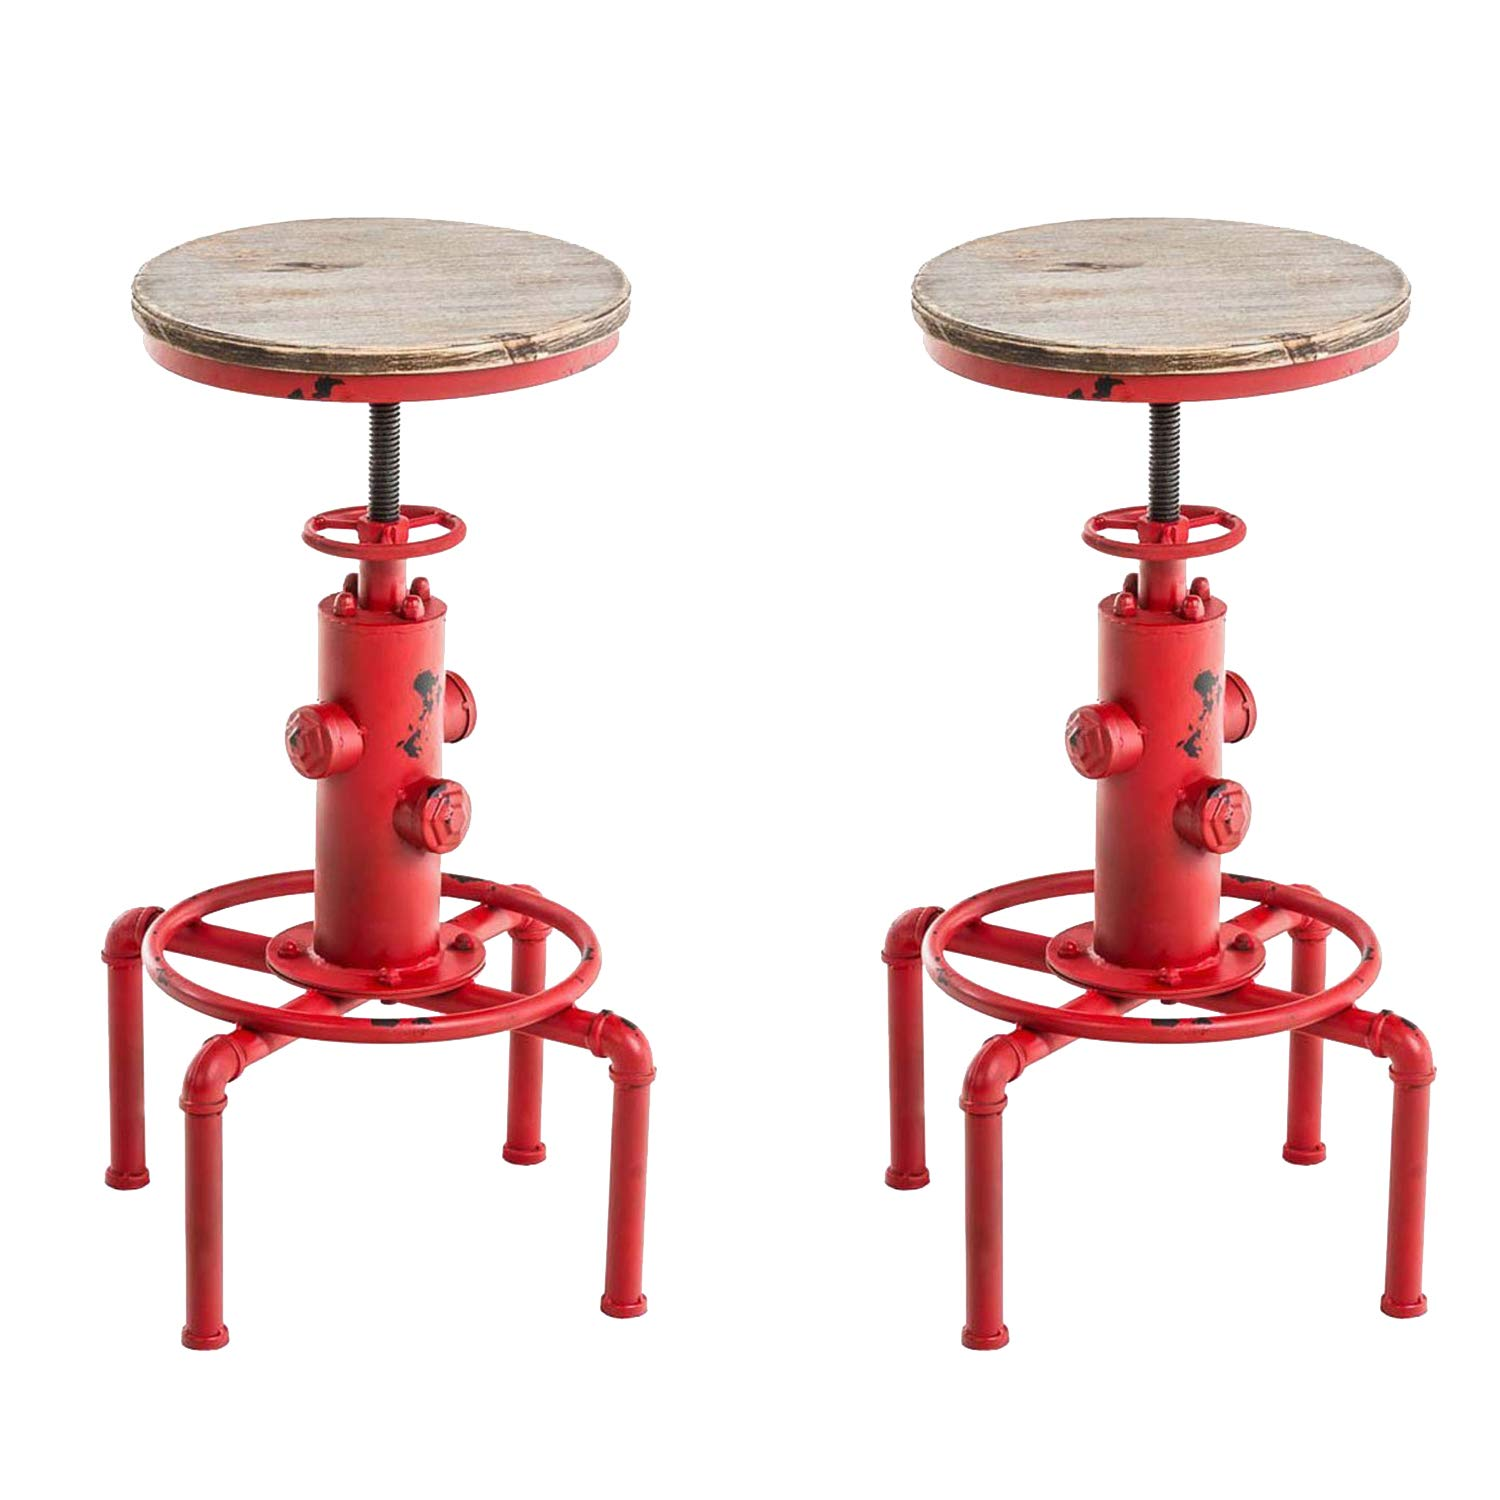 Topower American Antique Vintage Industrial Barstool Solid Wood Water Pipe Fire Hydrant Design Cafe Coffee Industrial Bar Stool Set of 2 (Antique Red, 2)